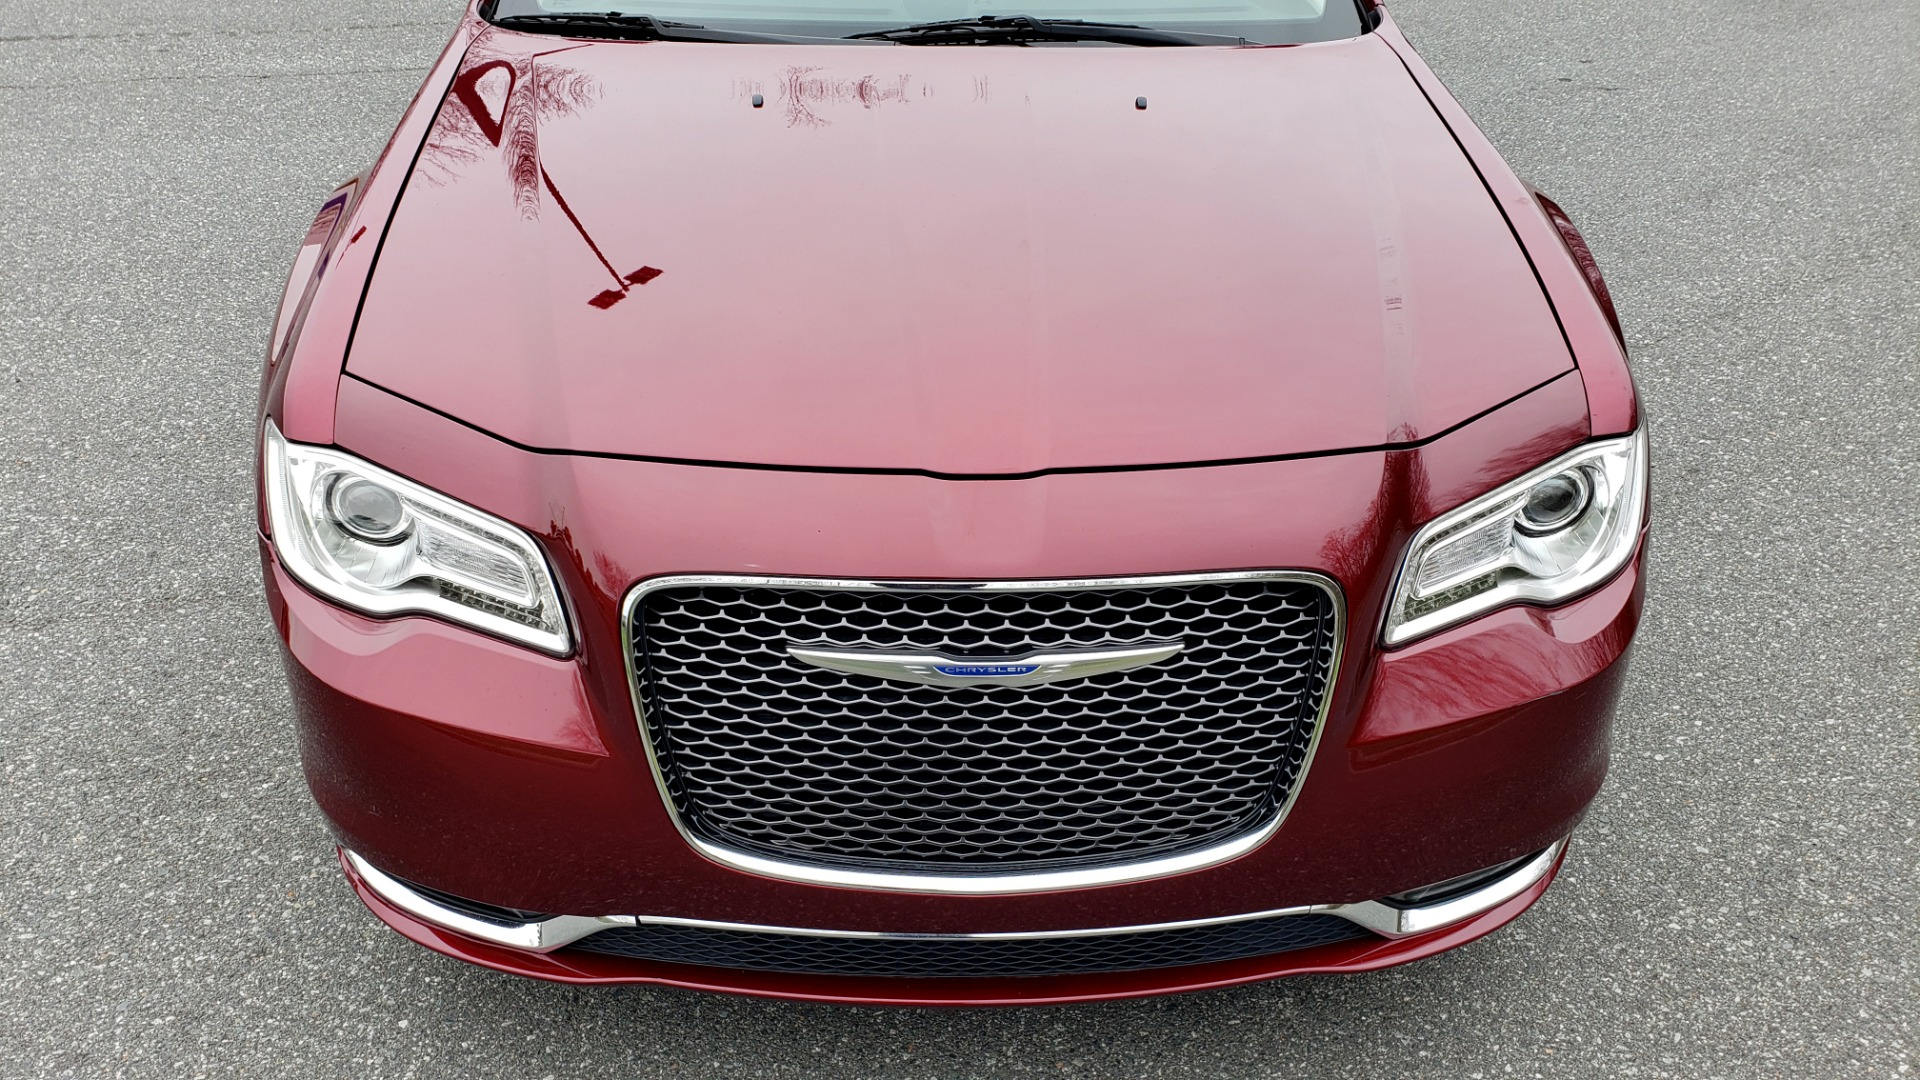 Used 2019 Chrysler 300 LIMITED / 3.6L V6 / 8-SPD AUTO / LEATHER / REARVIEW for sale Sold at Formula Imports in Charlotte NC 28227 20